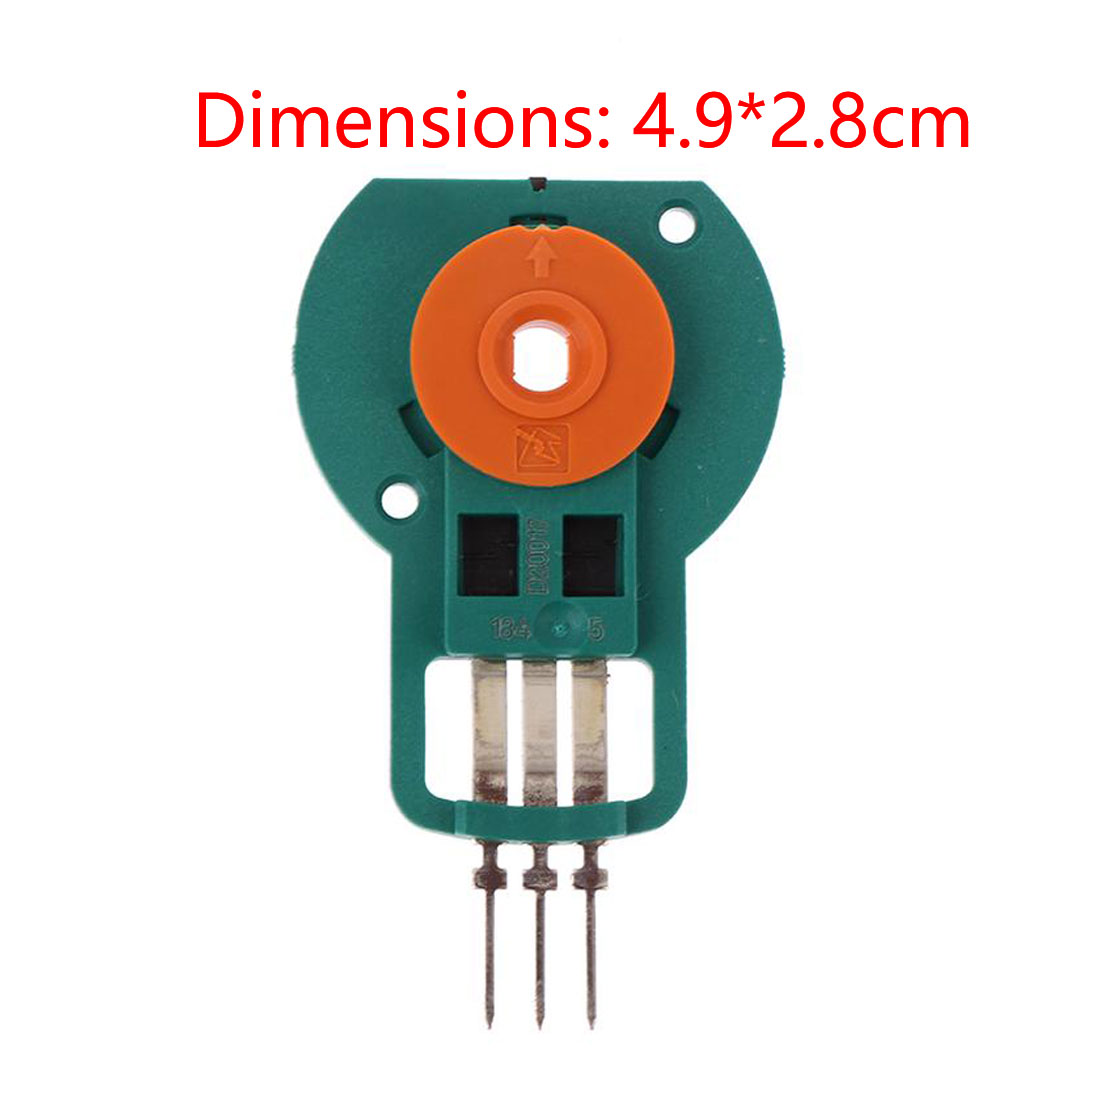 5PCS/LOT PIHER Automotive Air Conditioning Resistance Sensor 4.7K Resistance FP01-WDK02 Model Sensor